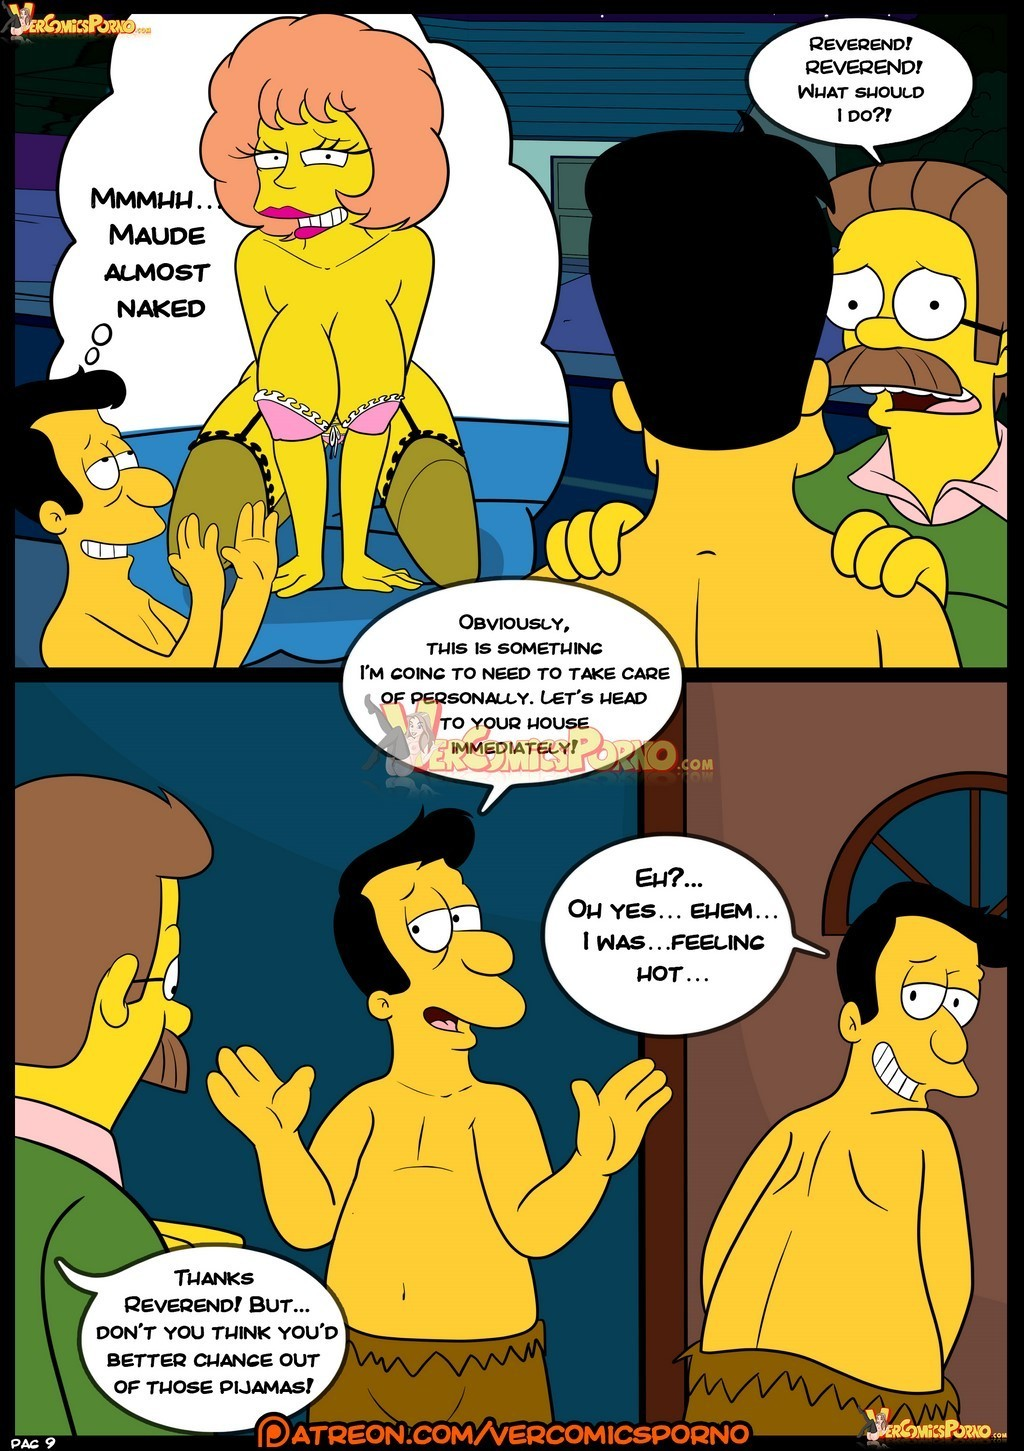 10 18 - The Simpsons. Part 8.